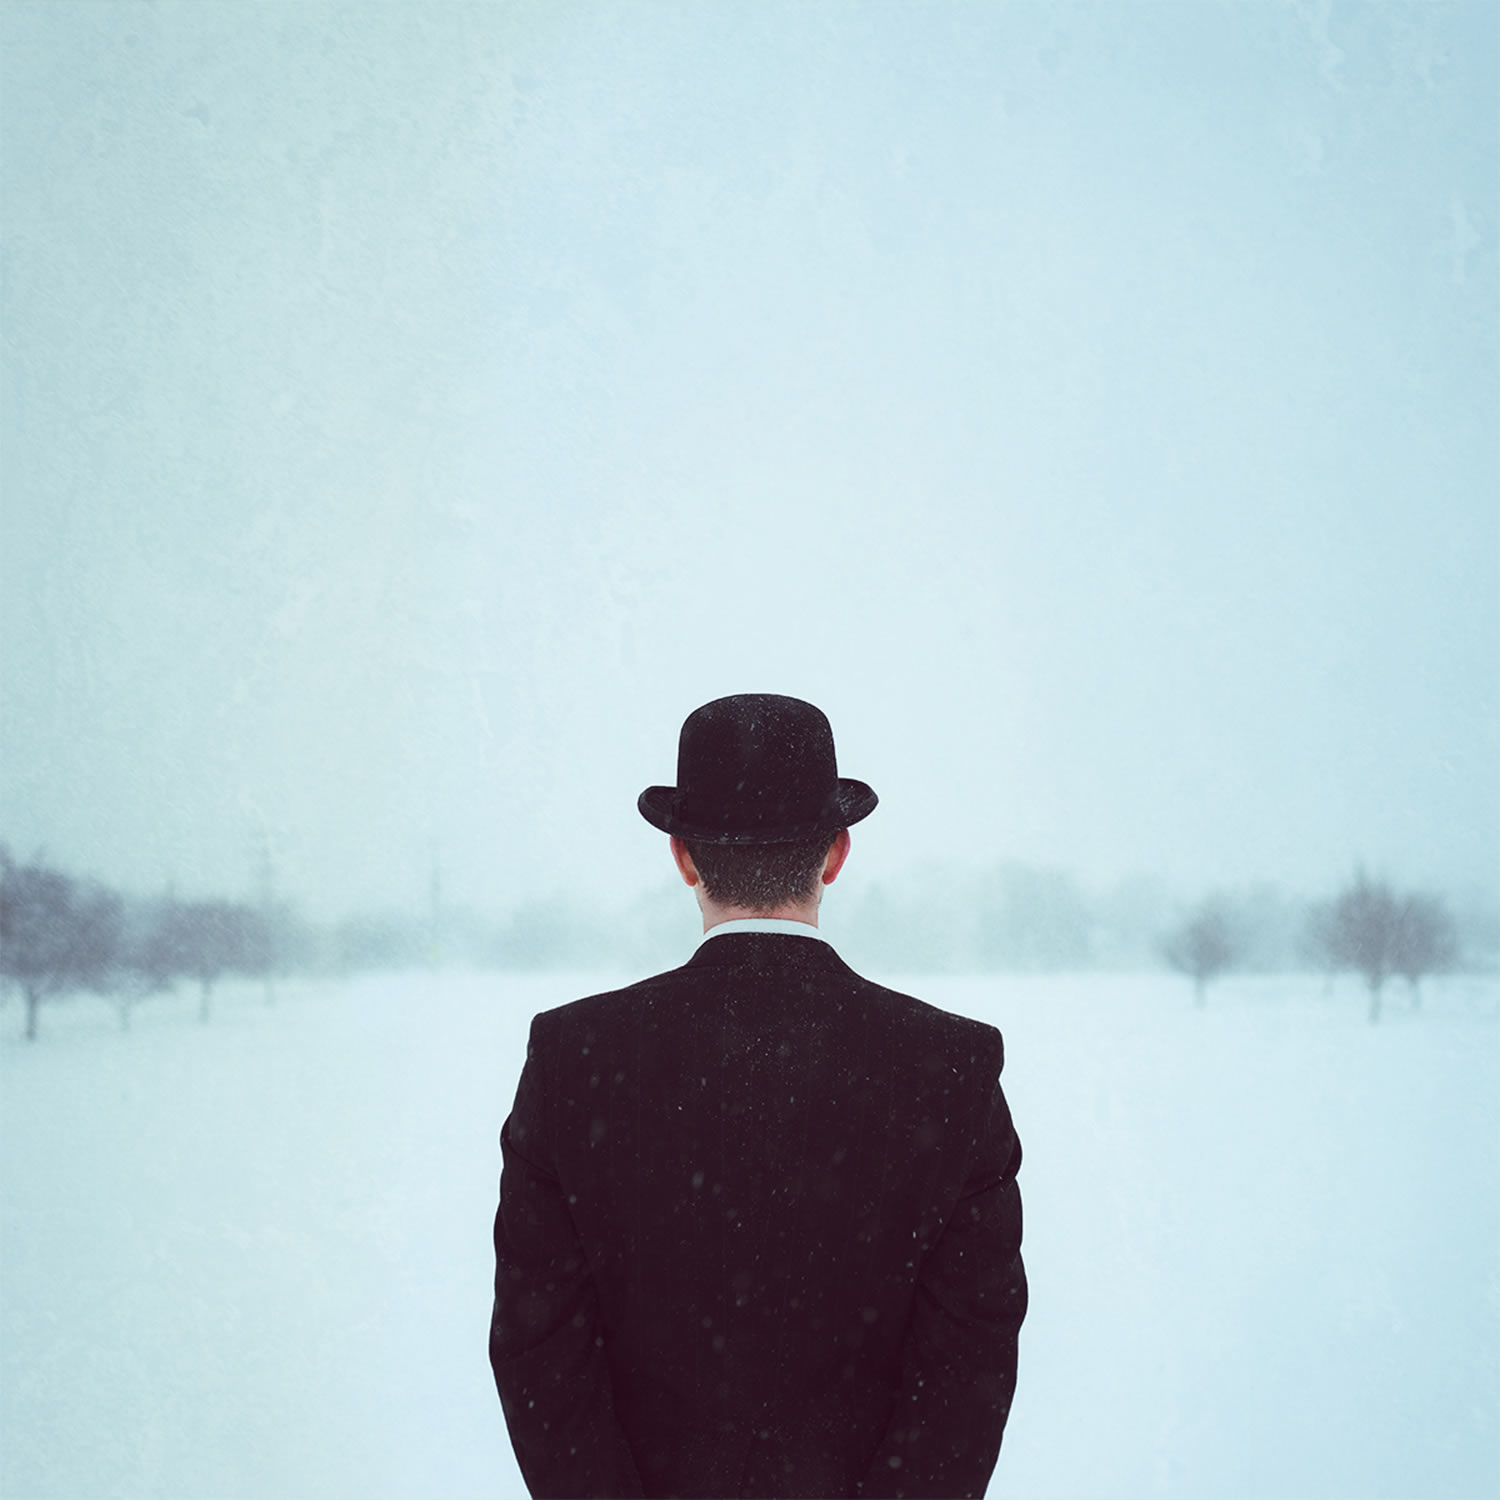 man with bowler hat, by logan zillmer